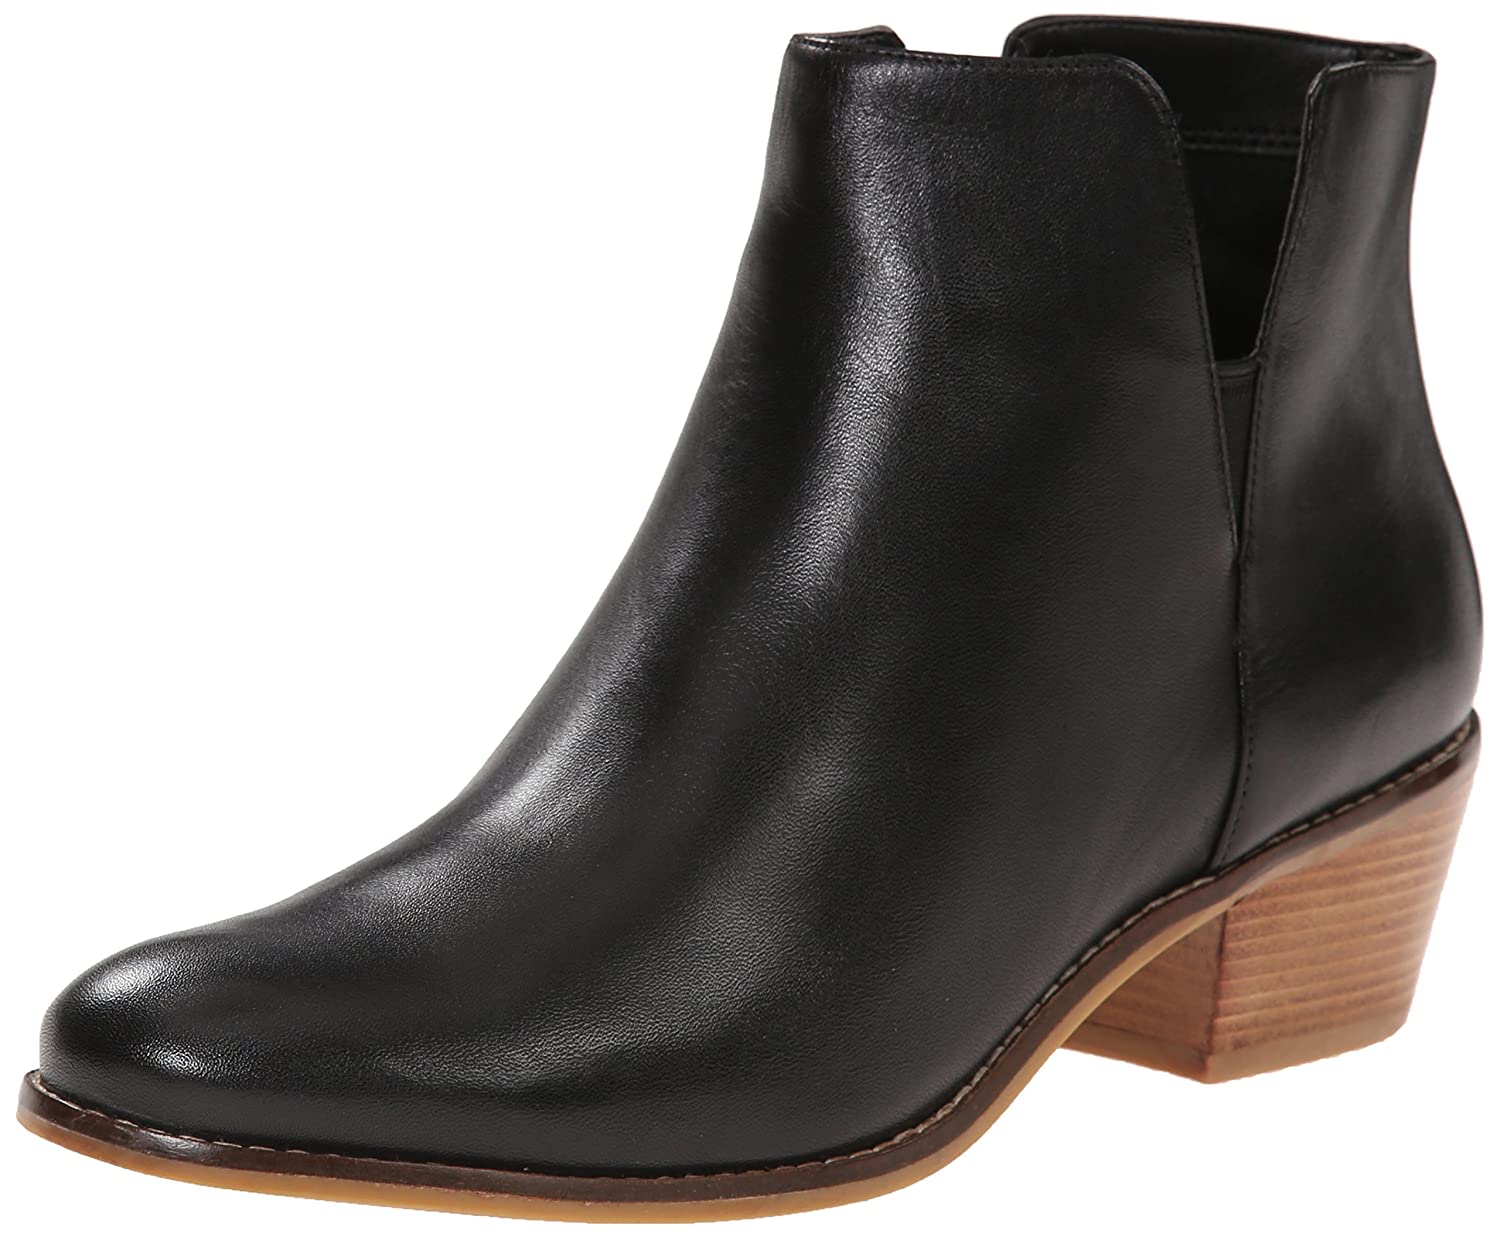 Cole Haan Women's Abbot Ankle Boot B00OPIXZFA 5 B(M) US|Black